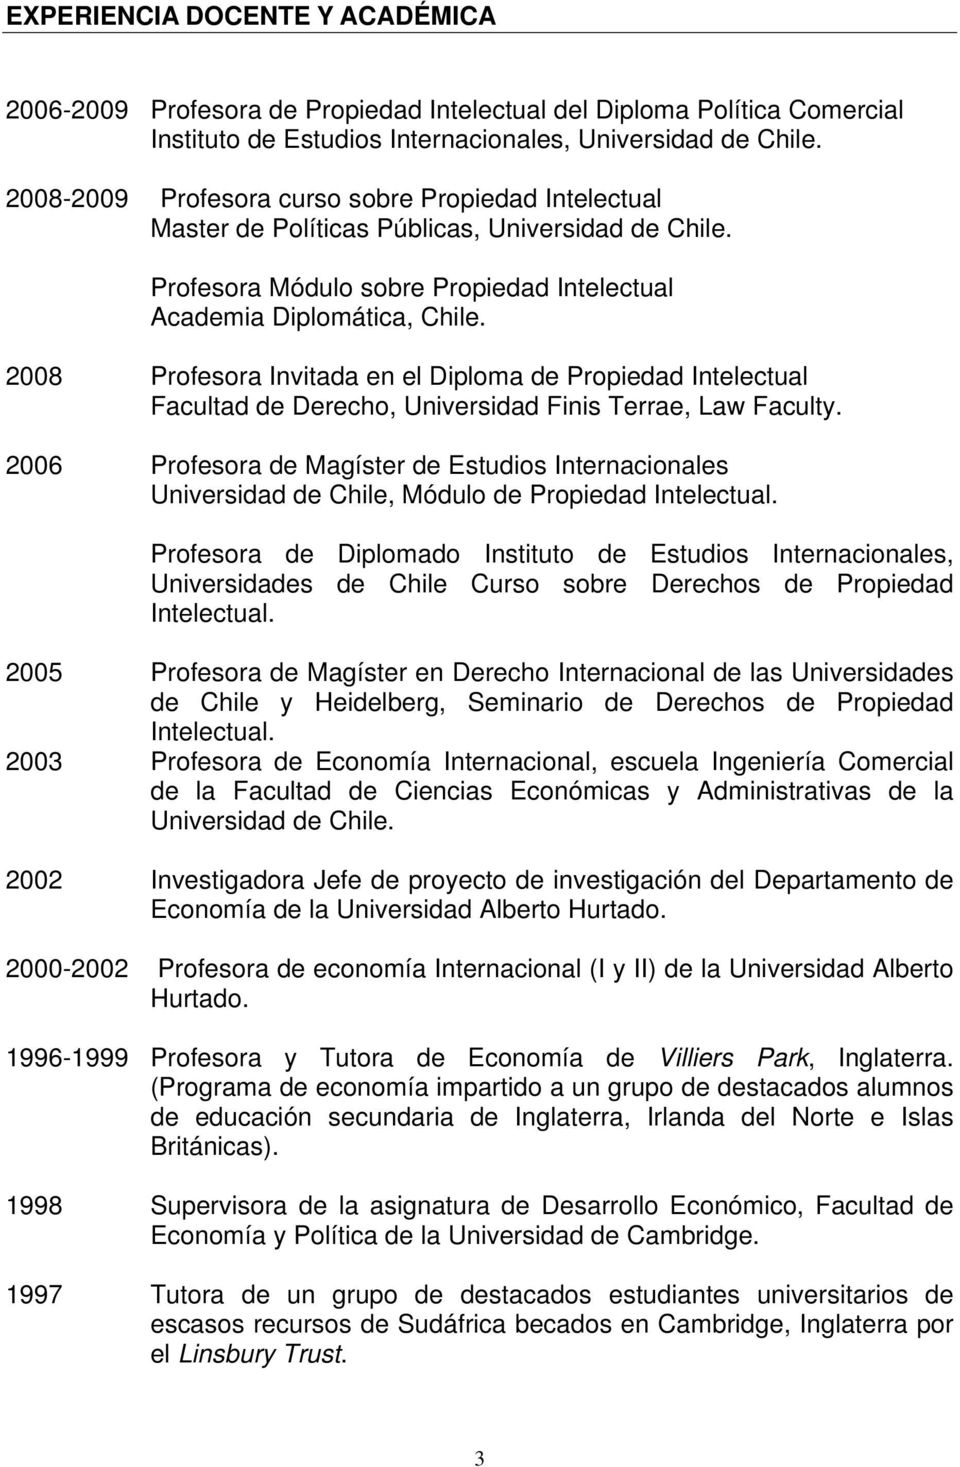 2008 Profesora Invitada en el Diploma de Propiedad Intelectual Facultad de Derecho, Universidad Finis Terrae, Law Faculty.